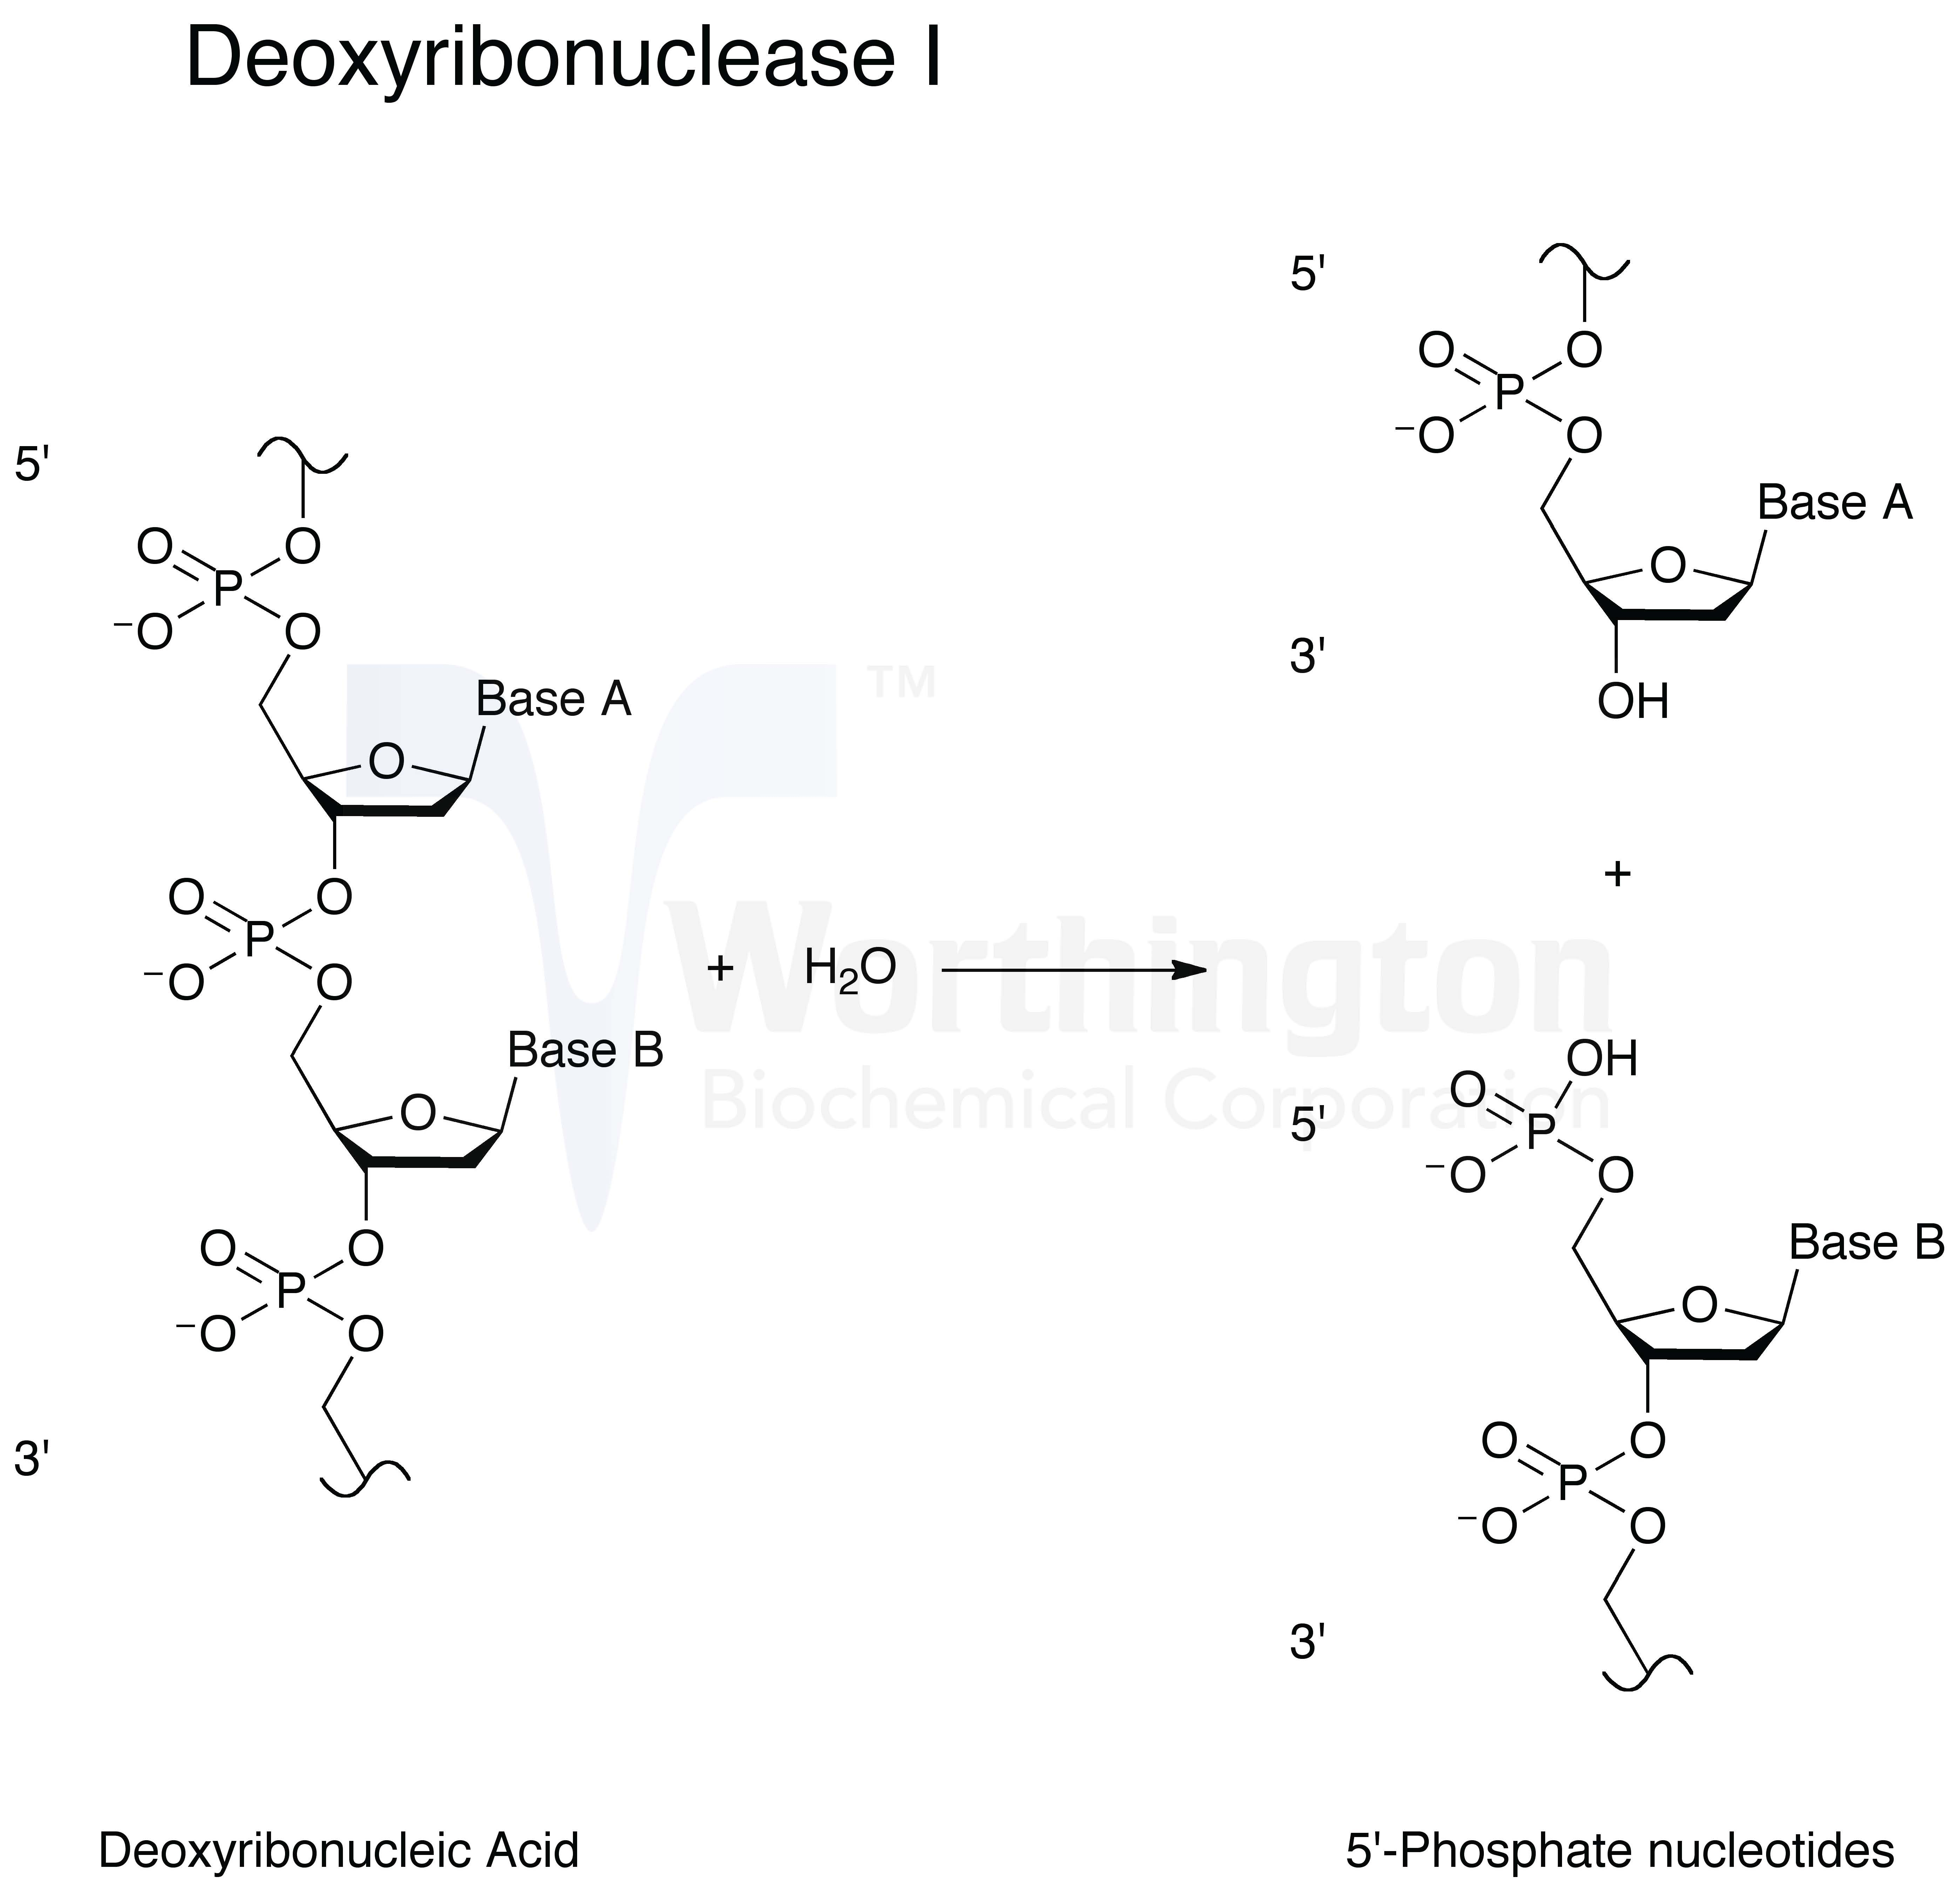 Enzymatic Reaction (image will open in a new window)